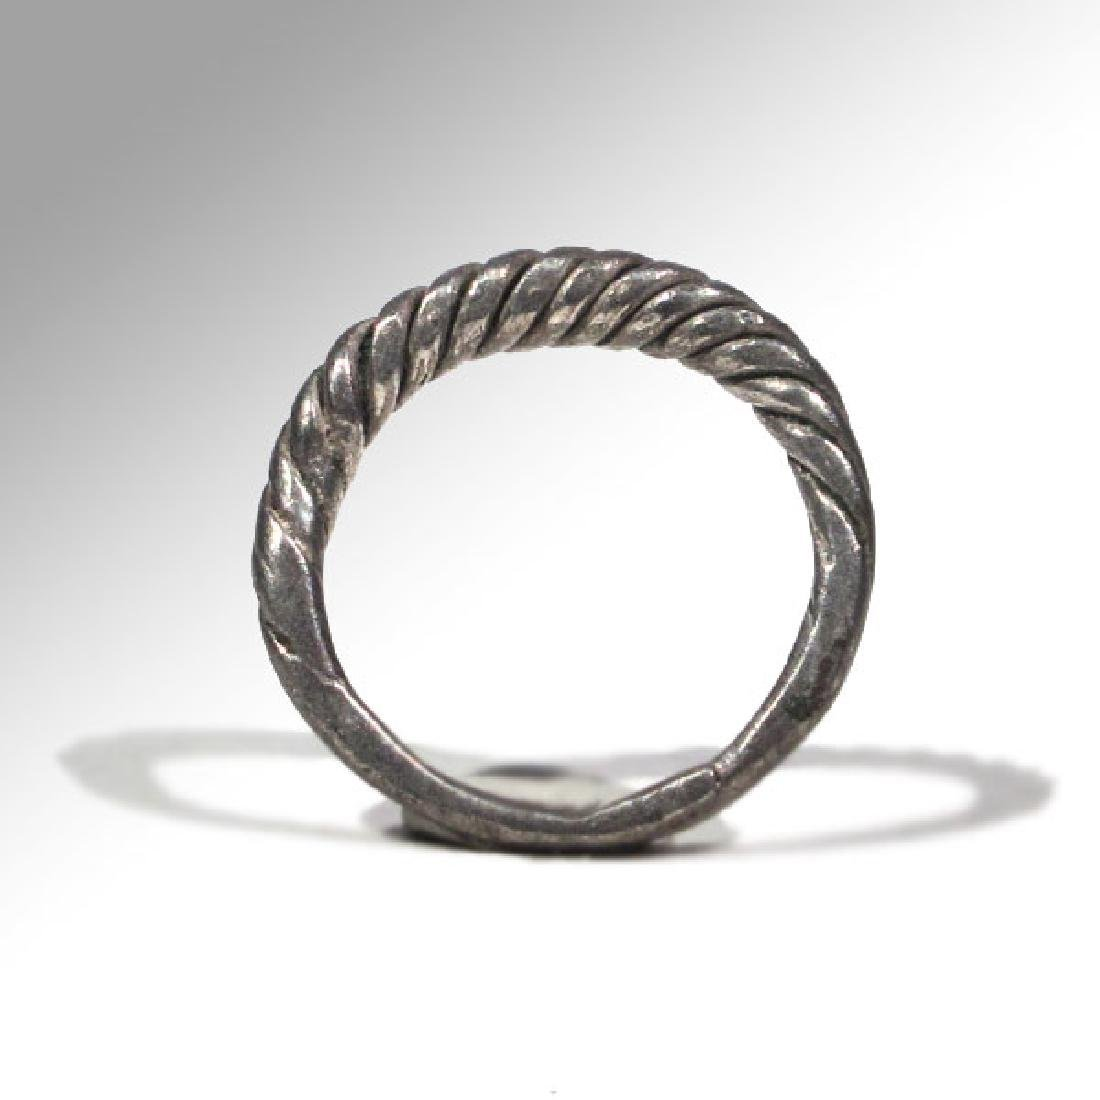 Viking Twisted Silver Ring, 9th -11th Century A.D. - 5